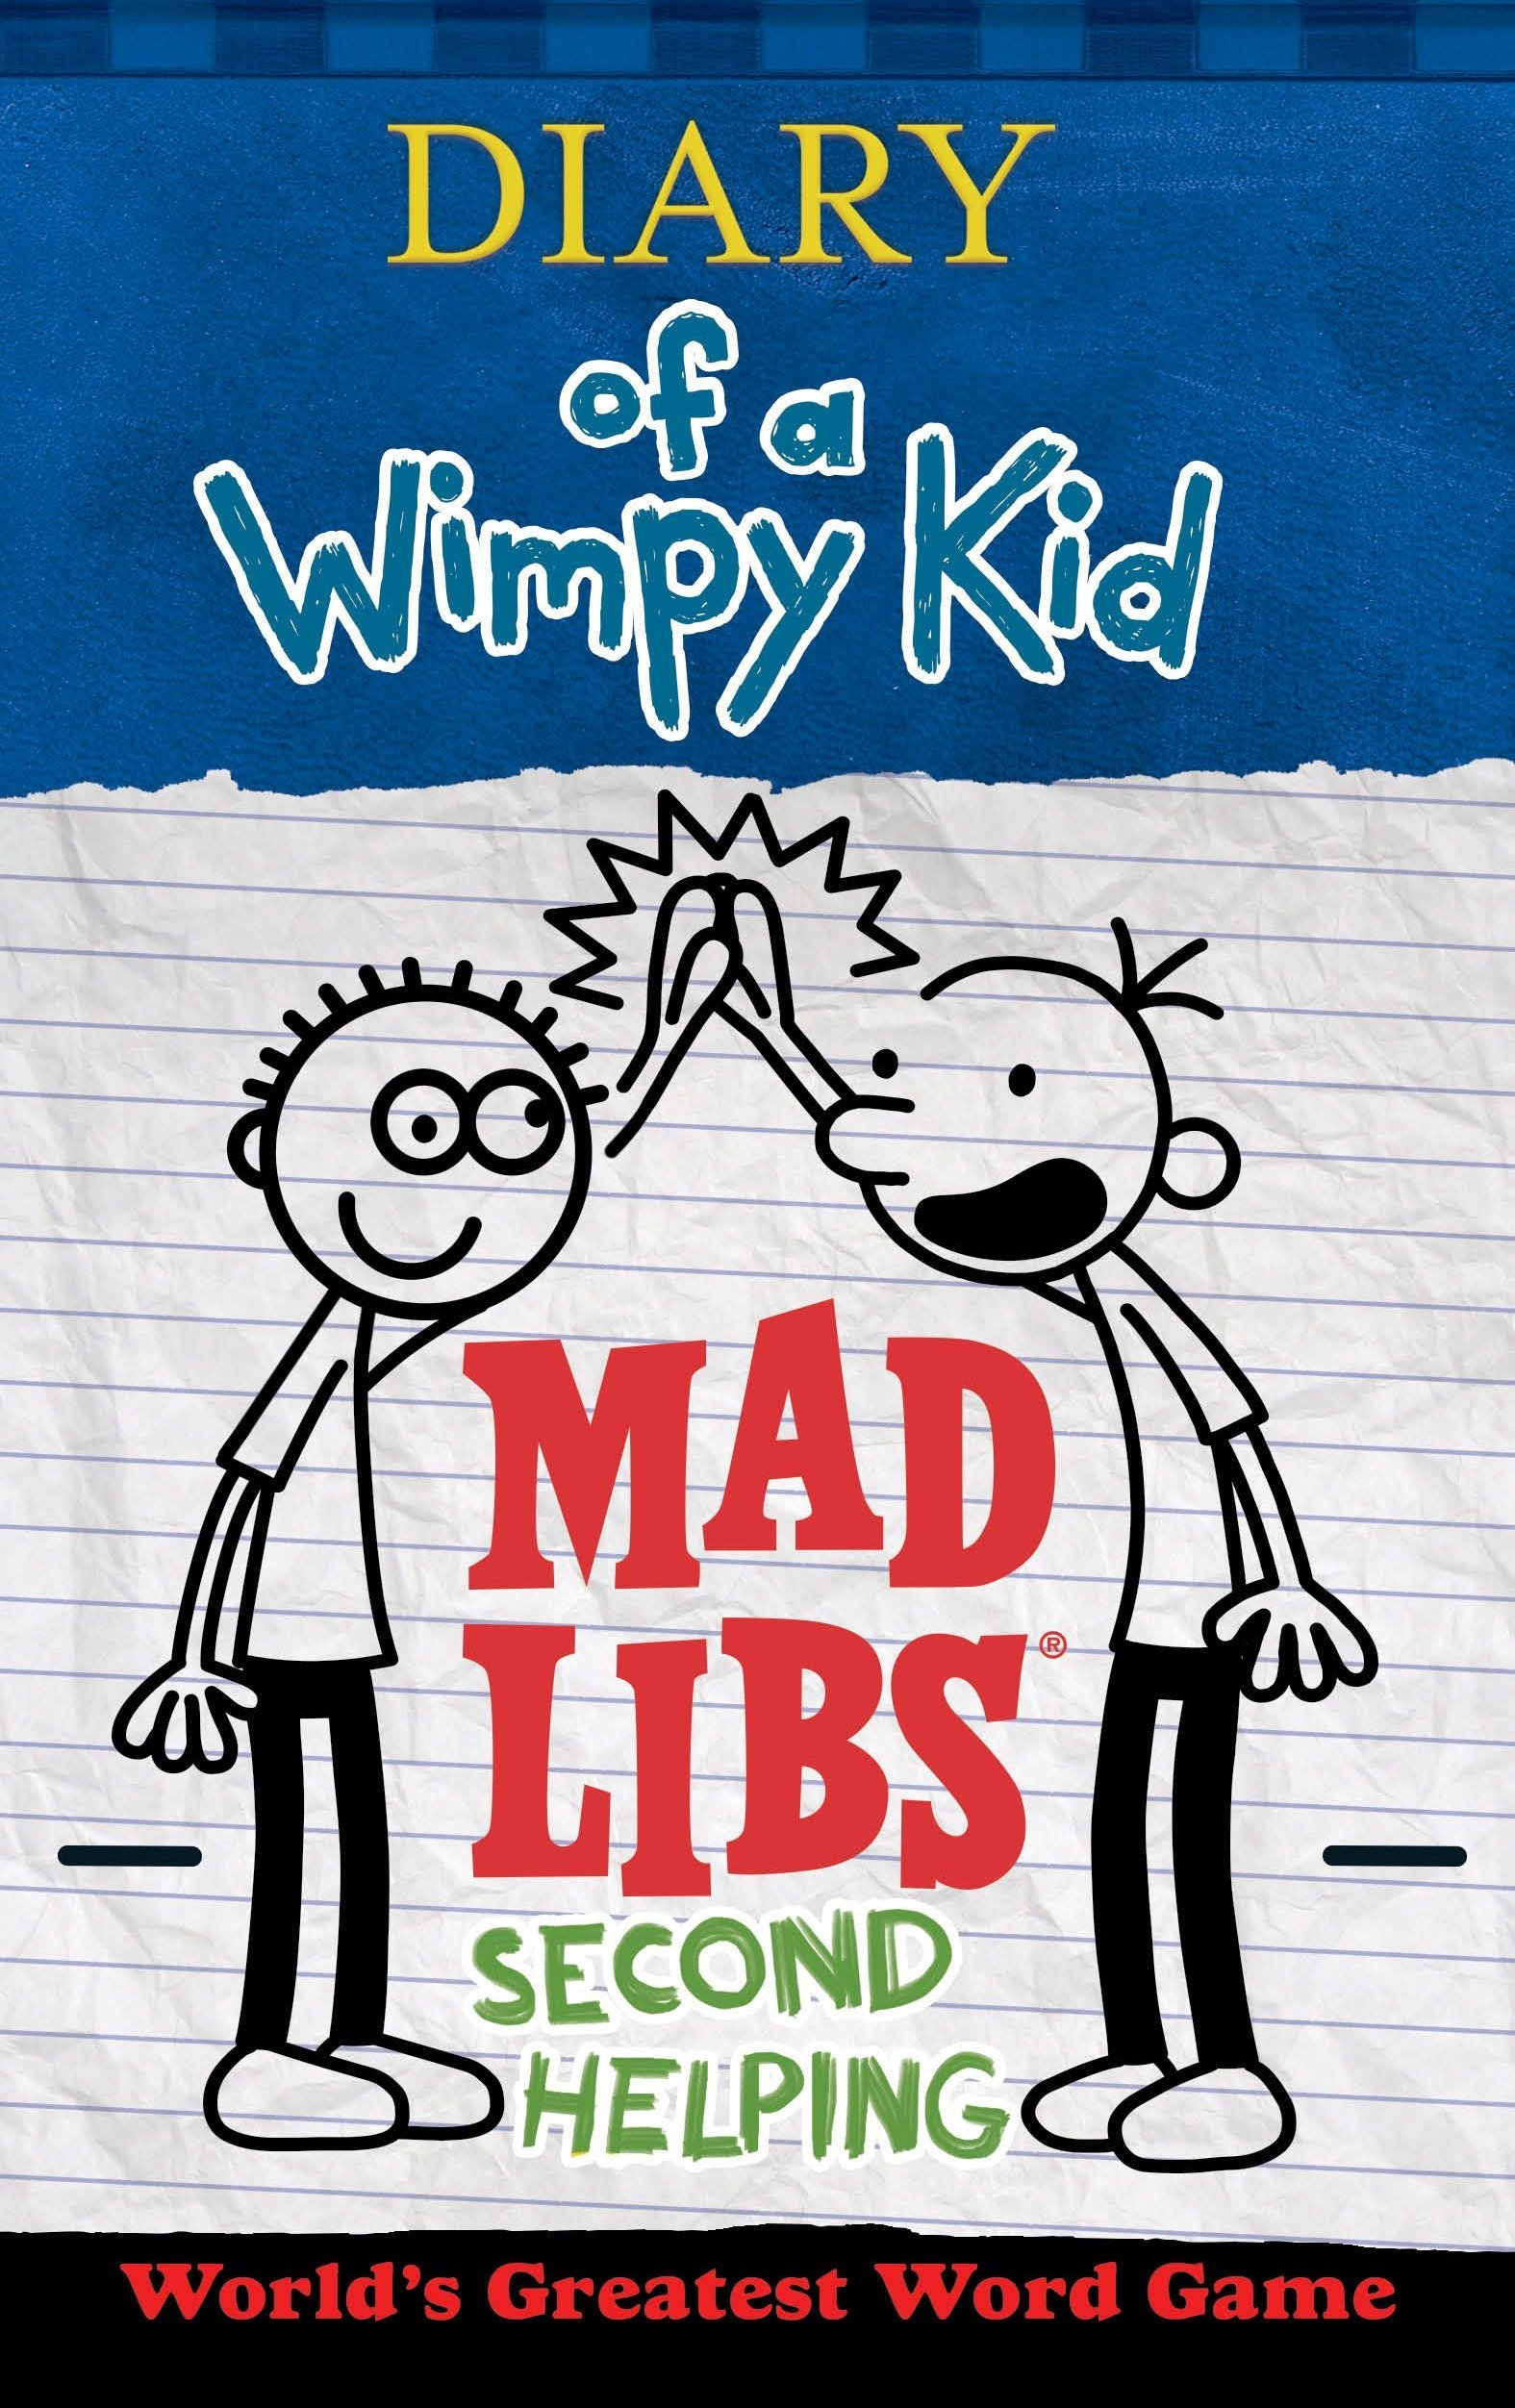 Diary Of A Wimpy Kid Mad Libs Second Helping Patrick Kinney